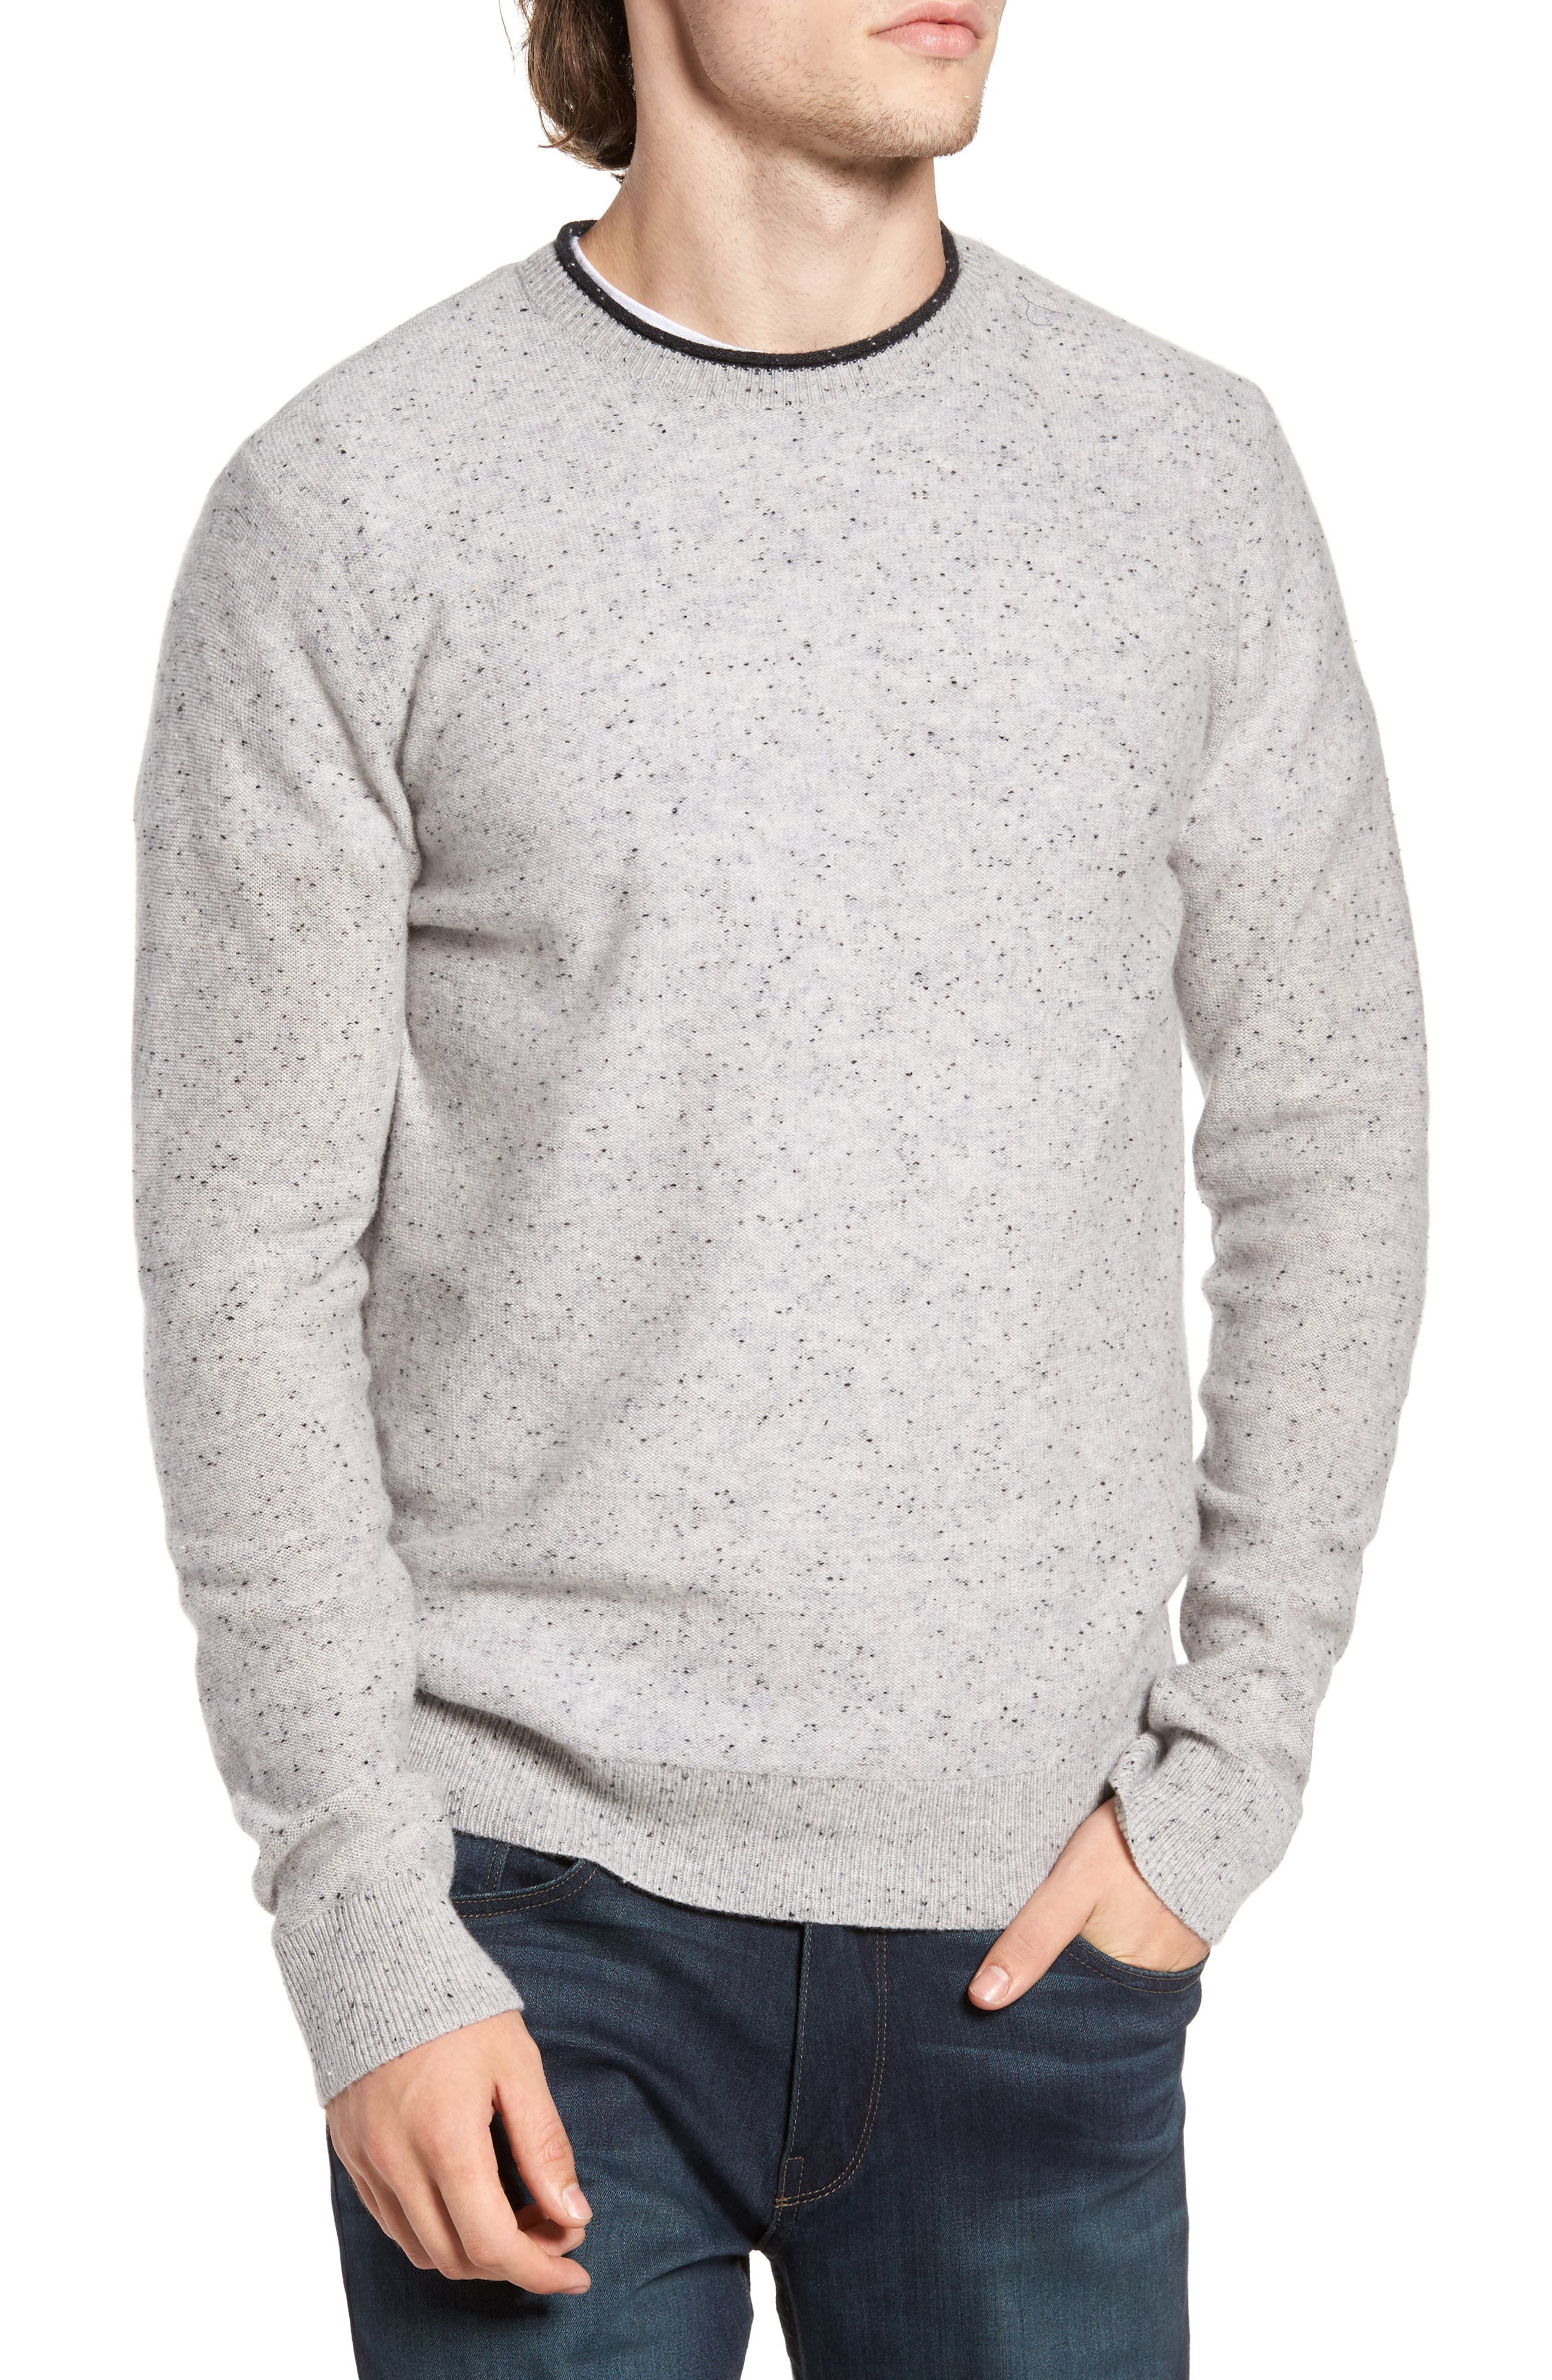 Nep Wool & Cashmere Sweater,                         Main,                         color, 020